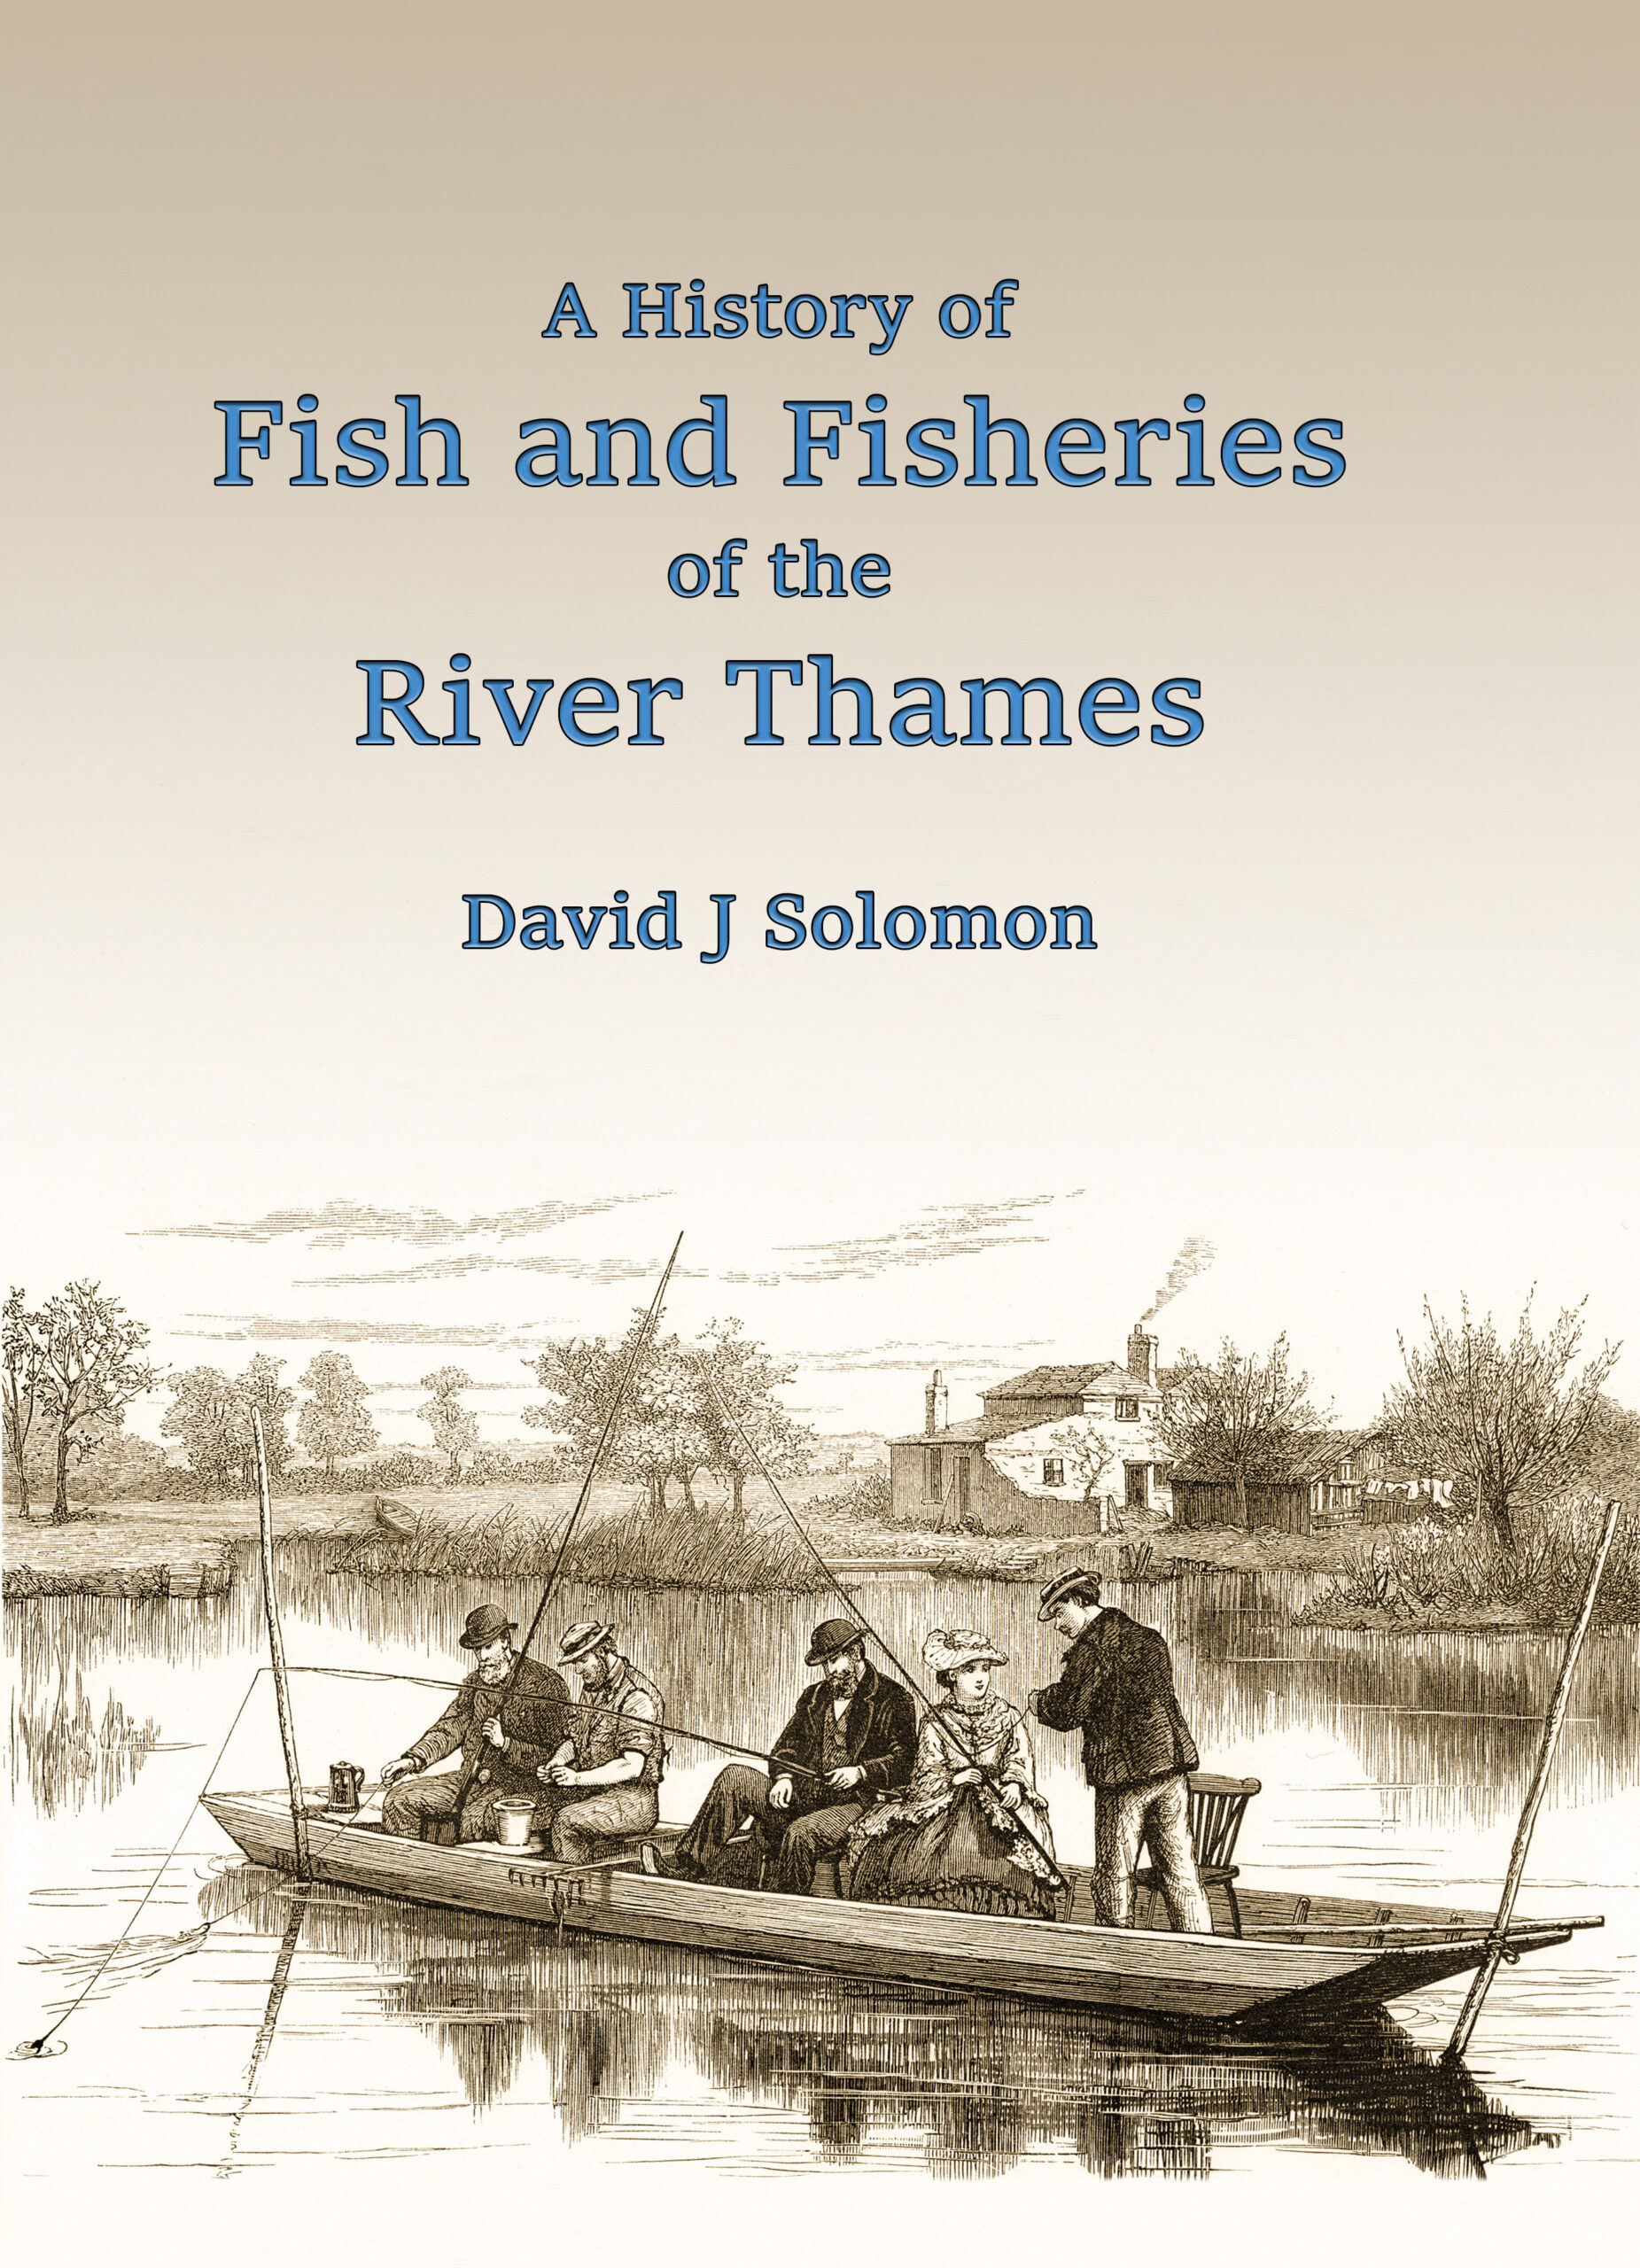 A history of fish and fisheries of the River Thames by David J Solomon